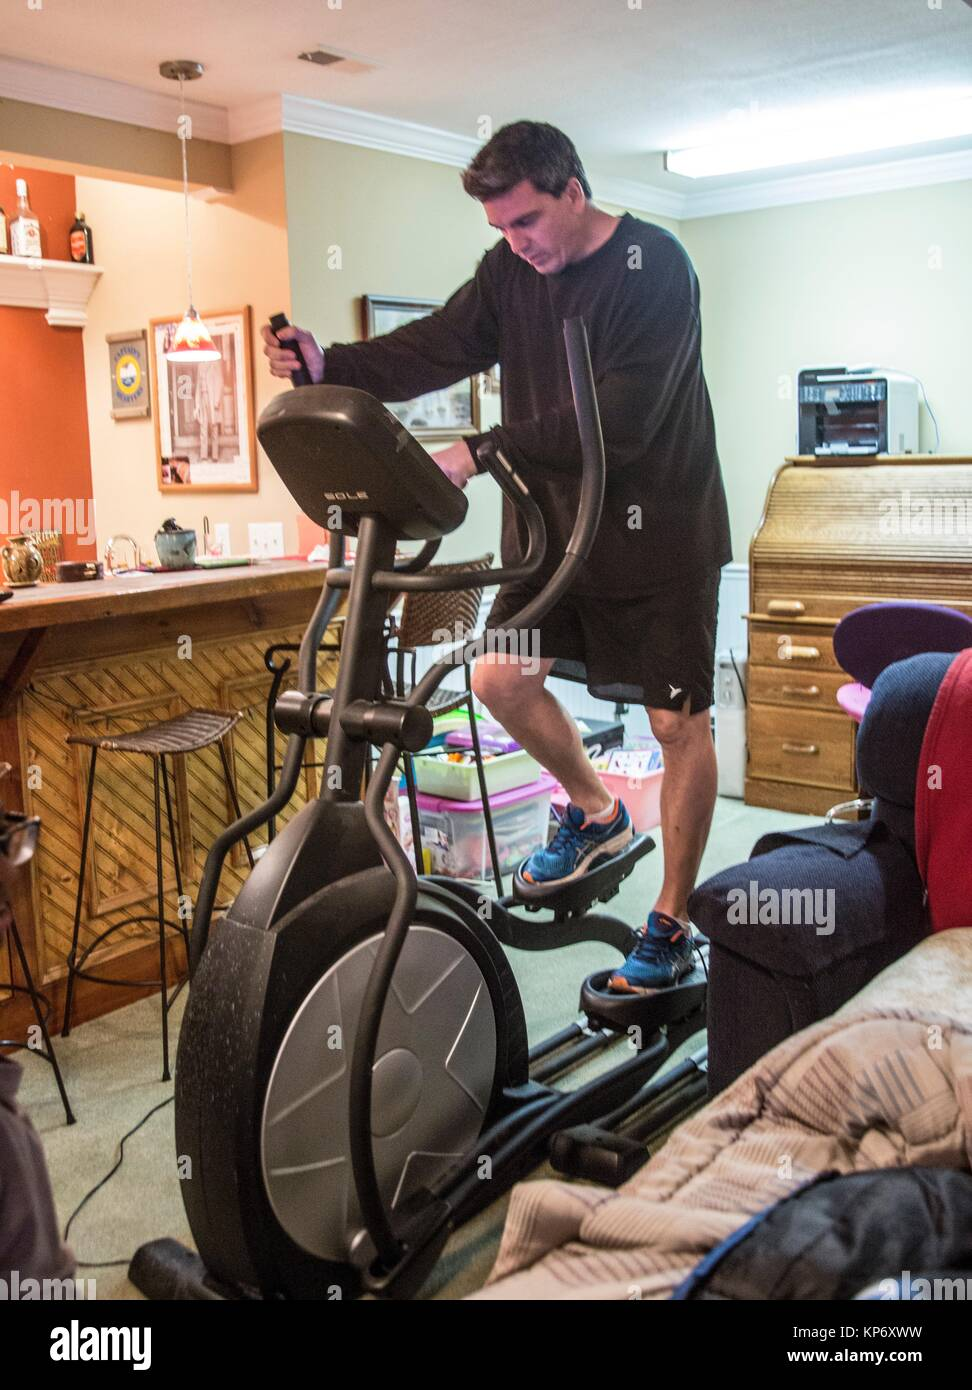 Man at home on a treadmill working out and having a hard time. - Stock Image